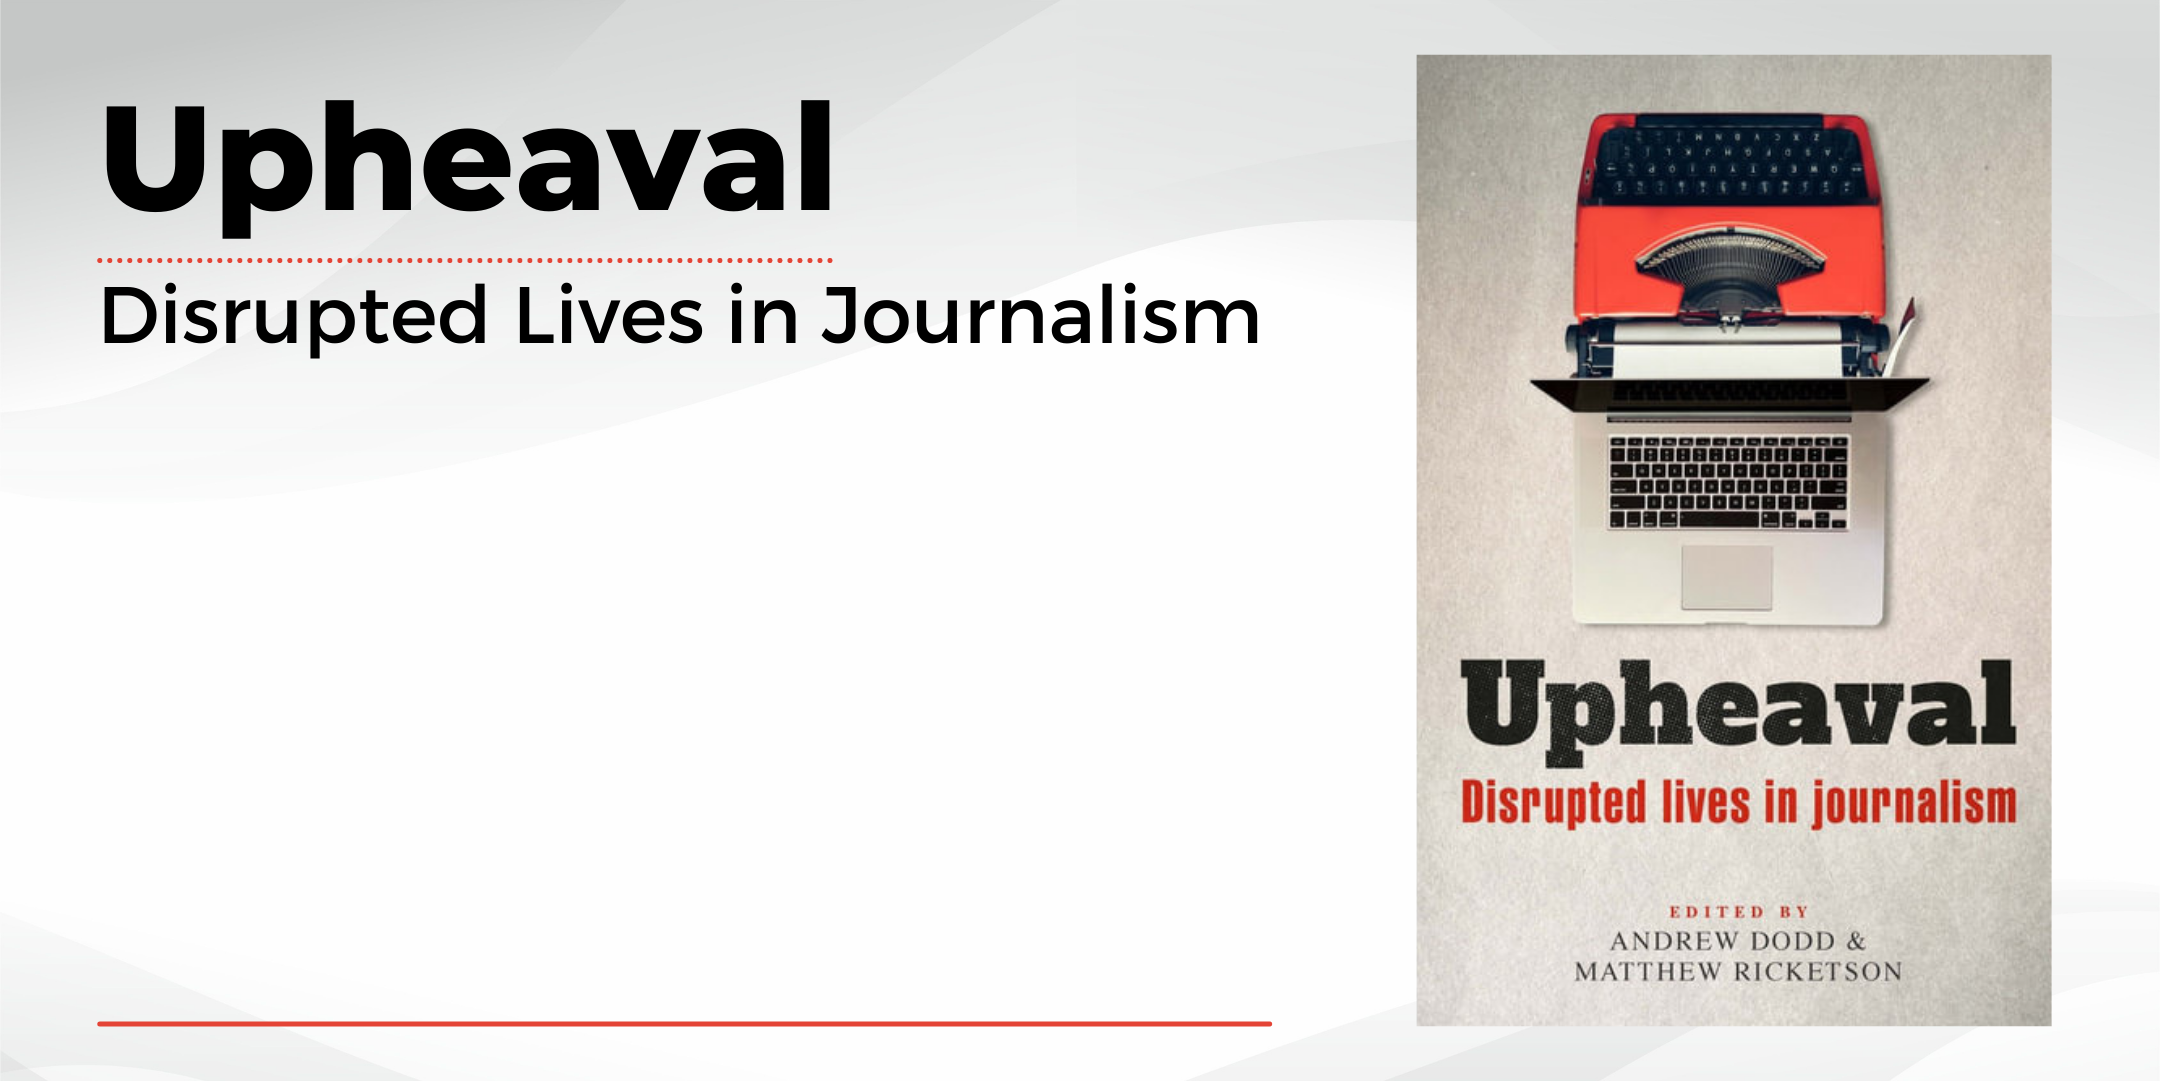 Upheaval: Disrupted Lives in Journalism Book Launch